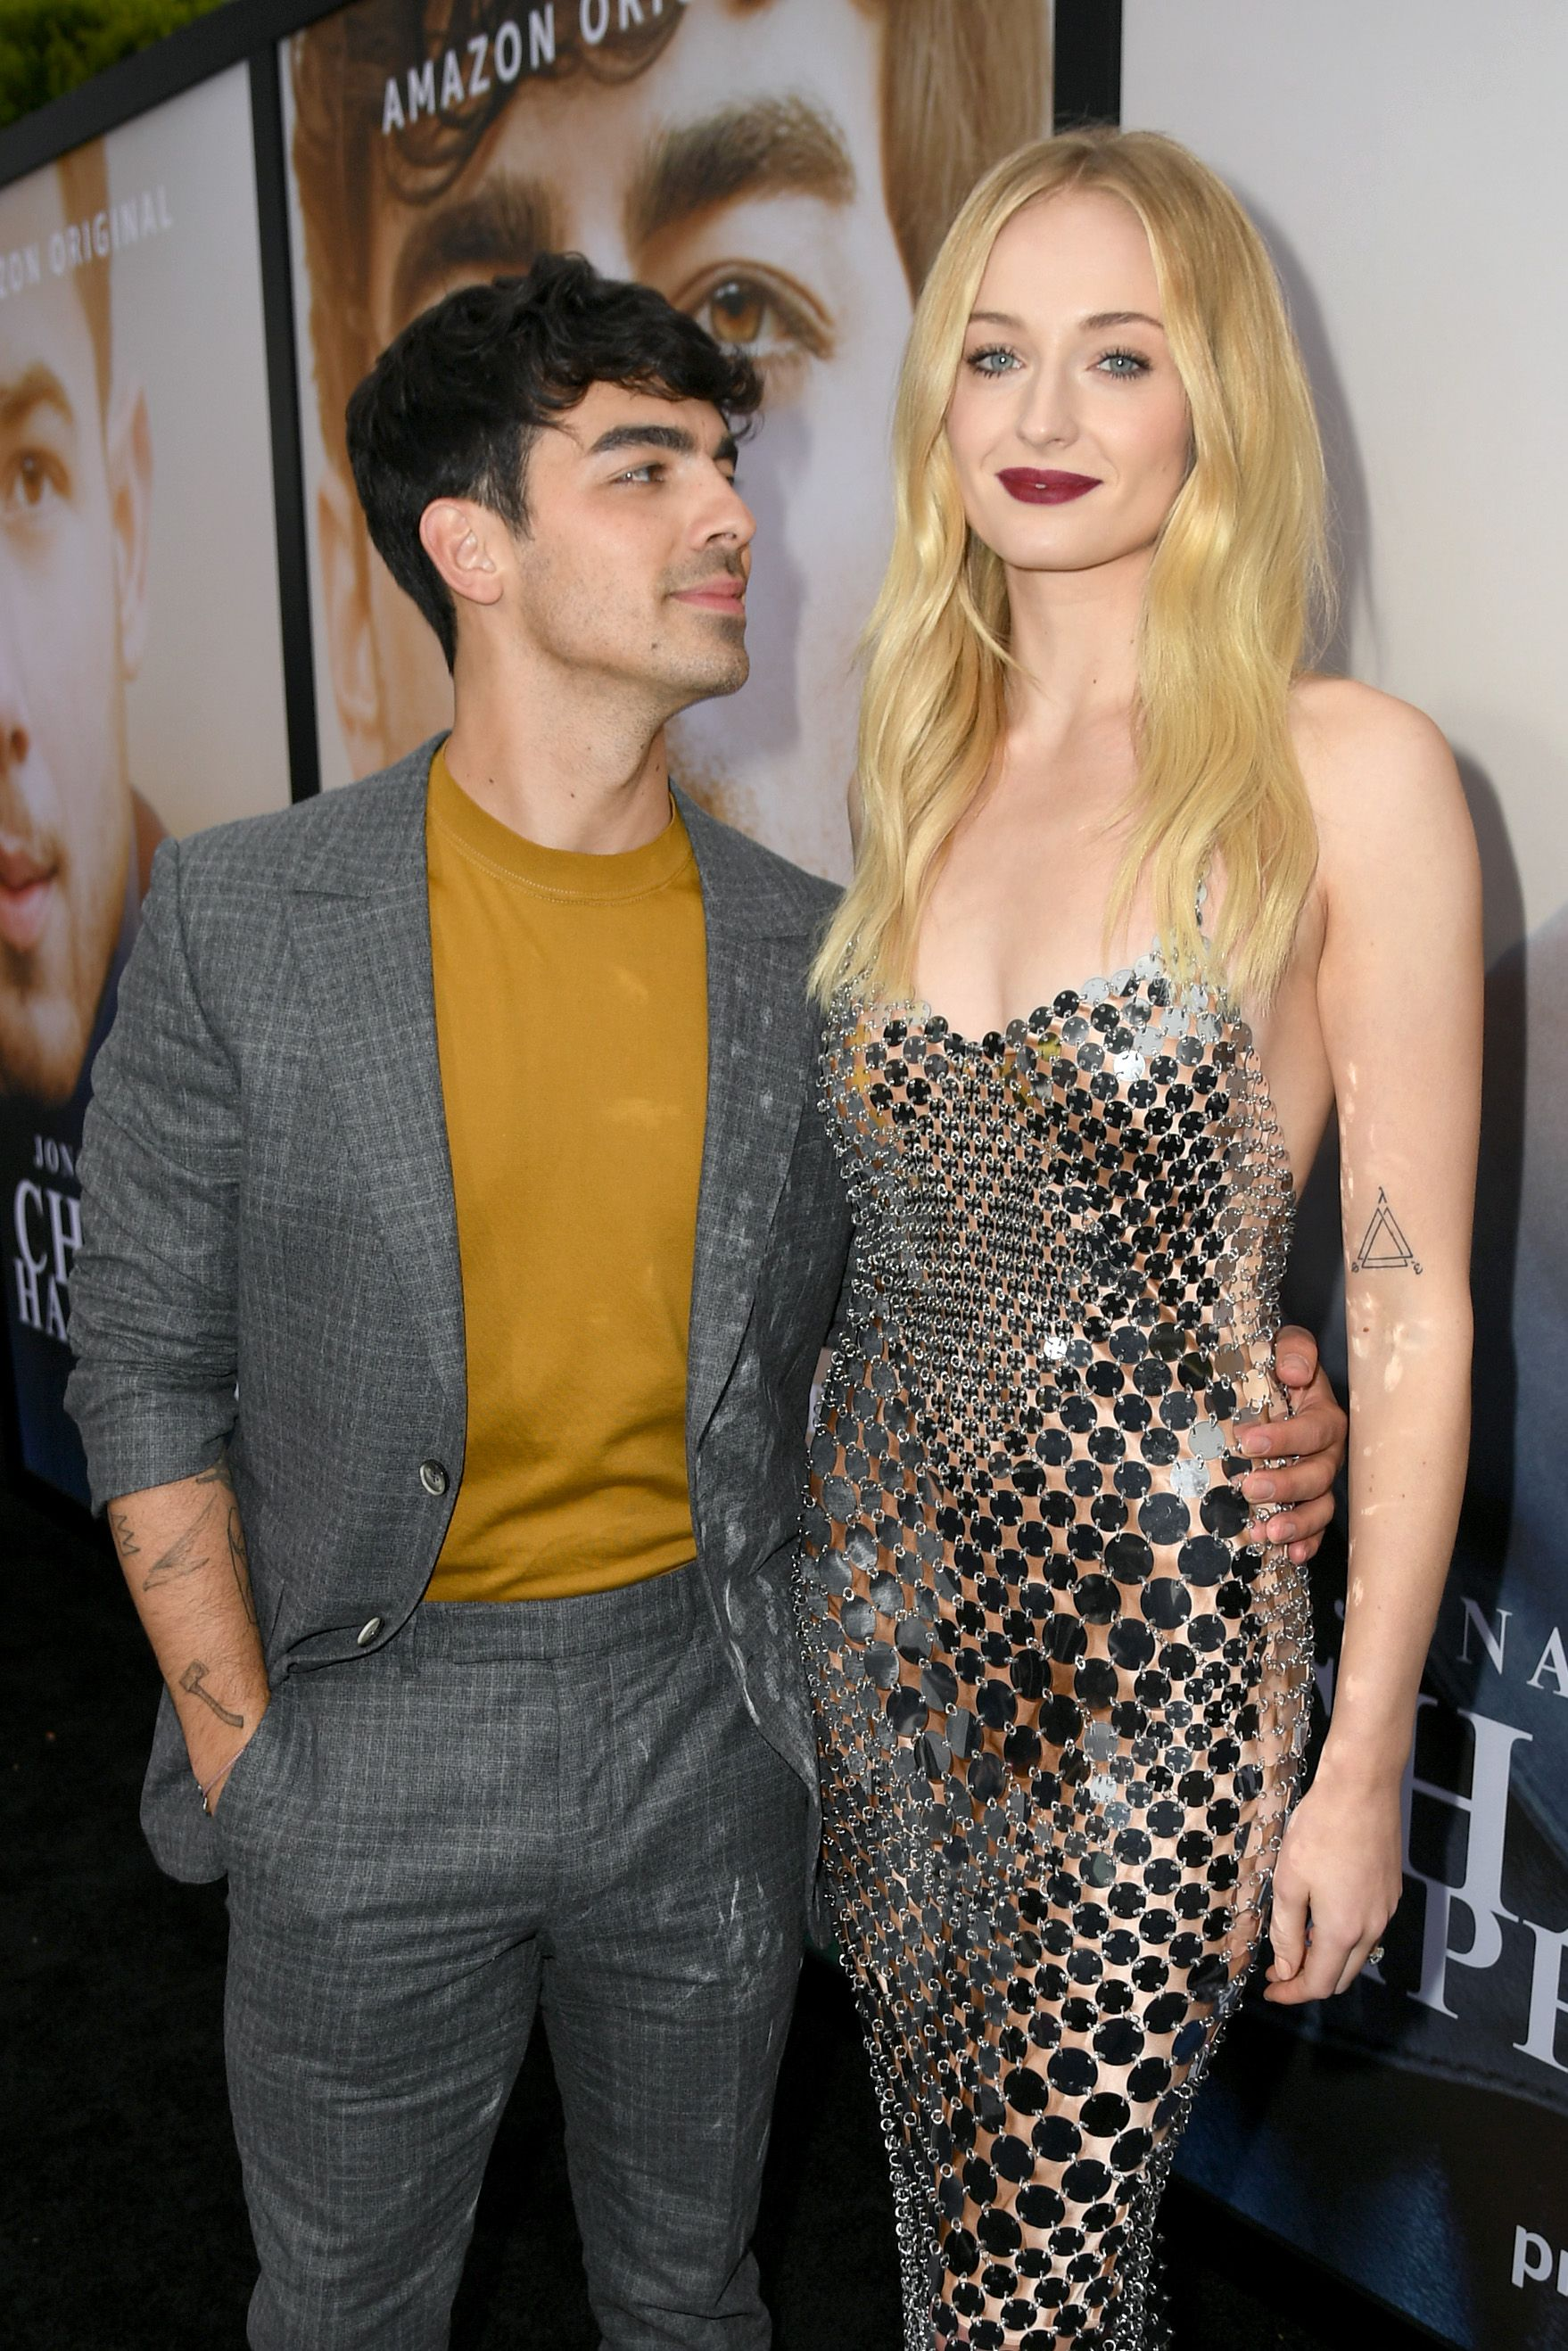 Joe Jonas and Sophie Turner during the Premiere of Amazon Prime Video's 'Chasing Happiness' at Regency Bruin Theatre on June 03, 2019 in Los Angeles, California. | Source: Getty Images